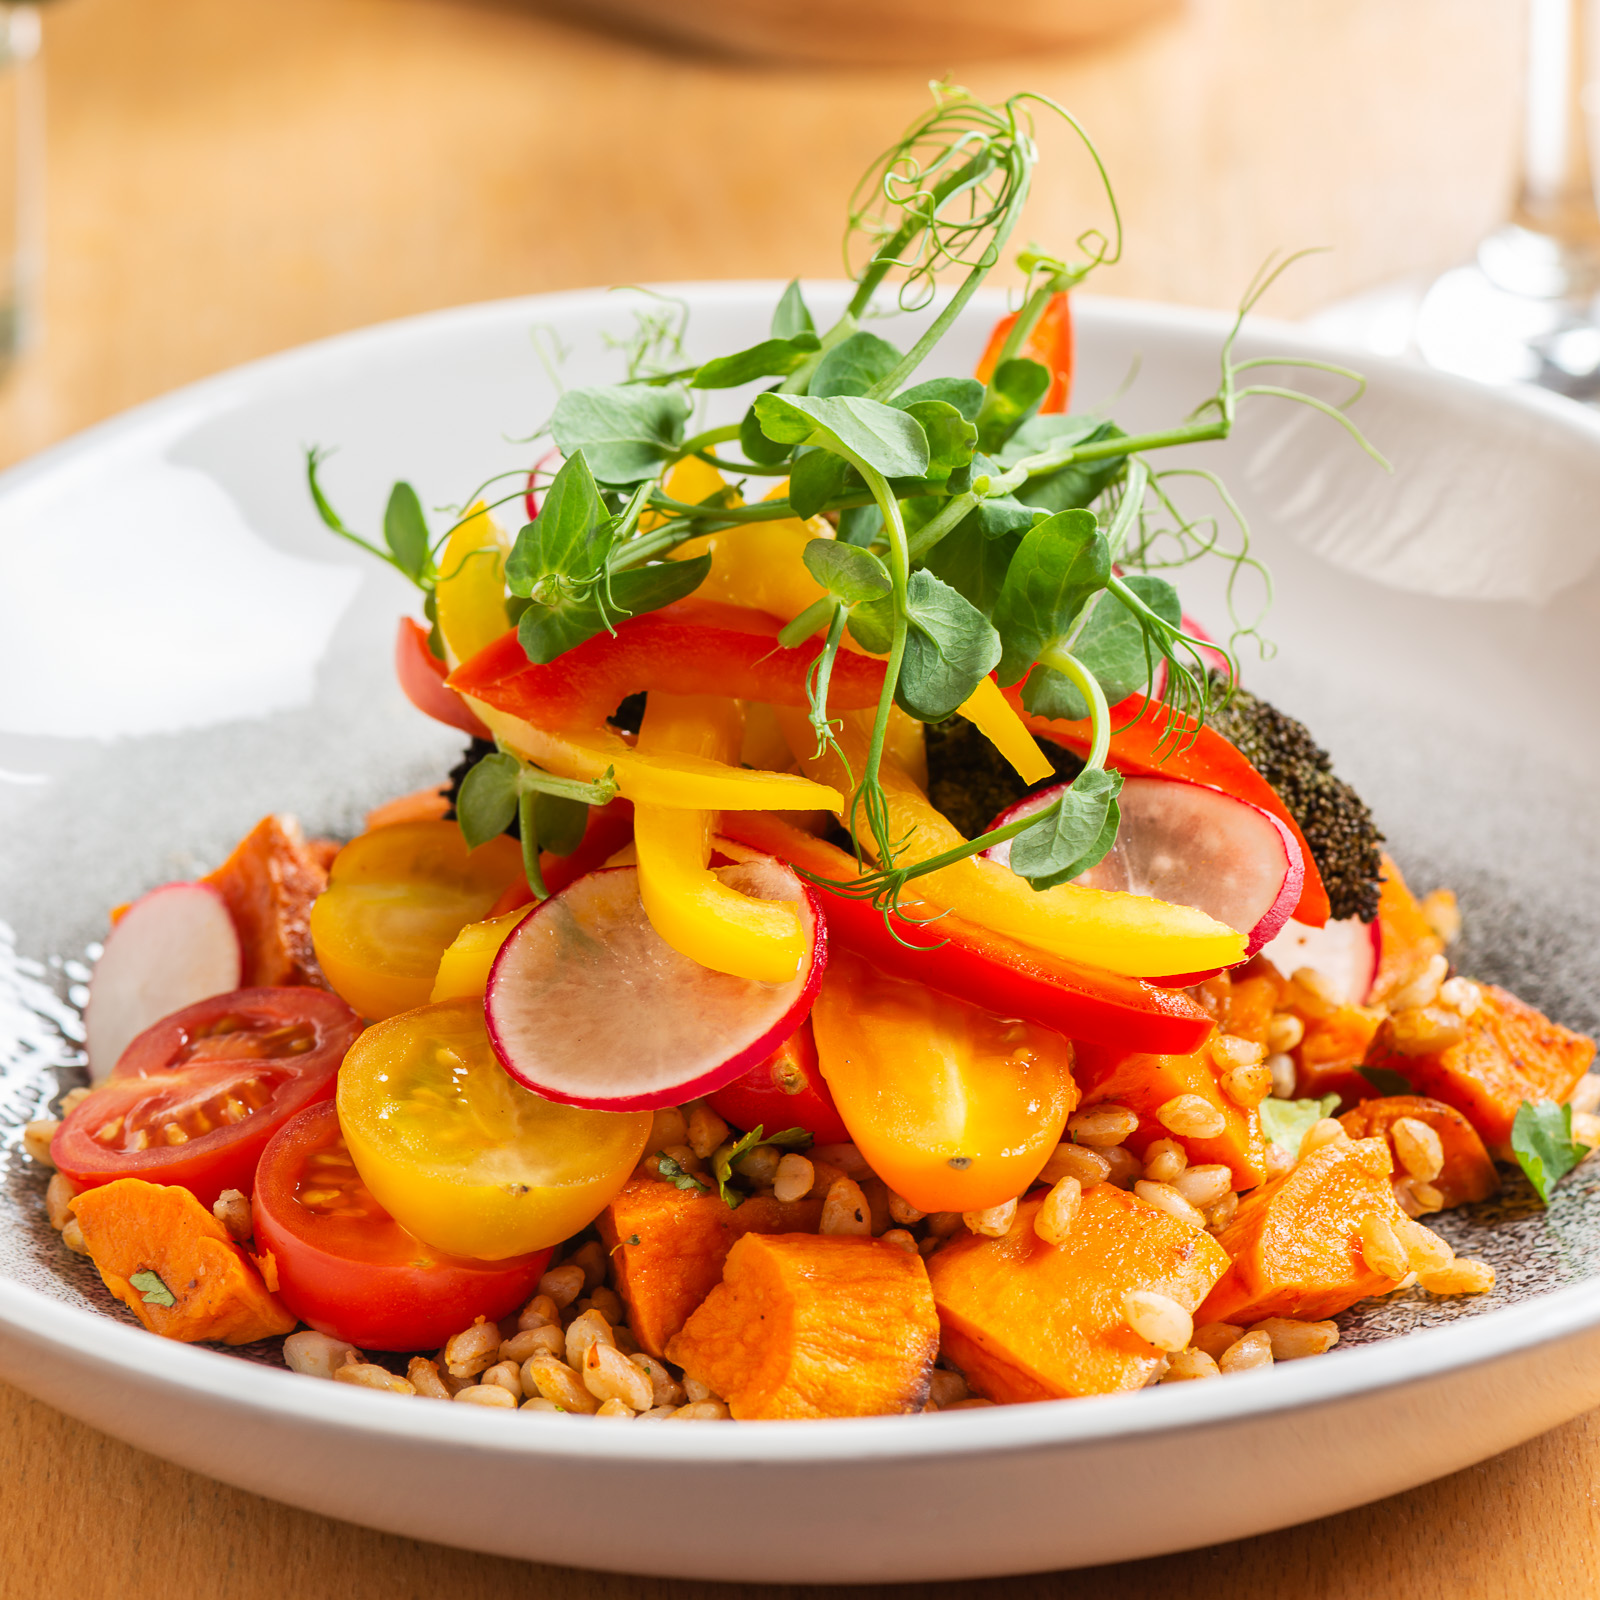 Super Food Salad - Farro, harissa sweet potato, pickled peppers, grilled broccoli, avocado and coconut dressing by Searcys. Photography by Sue Todd Photography